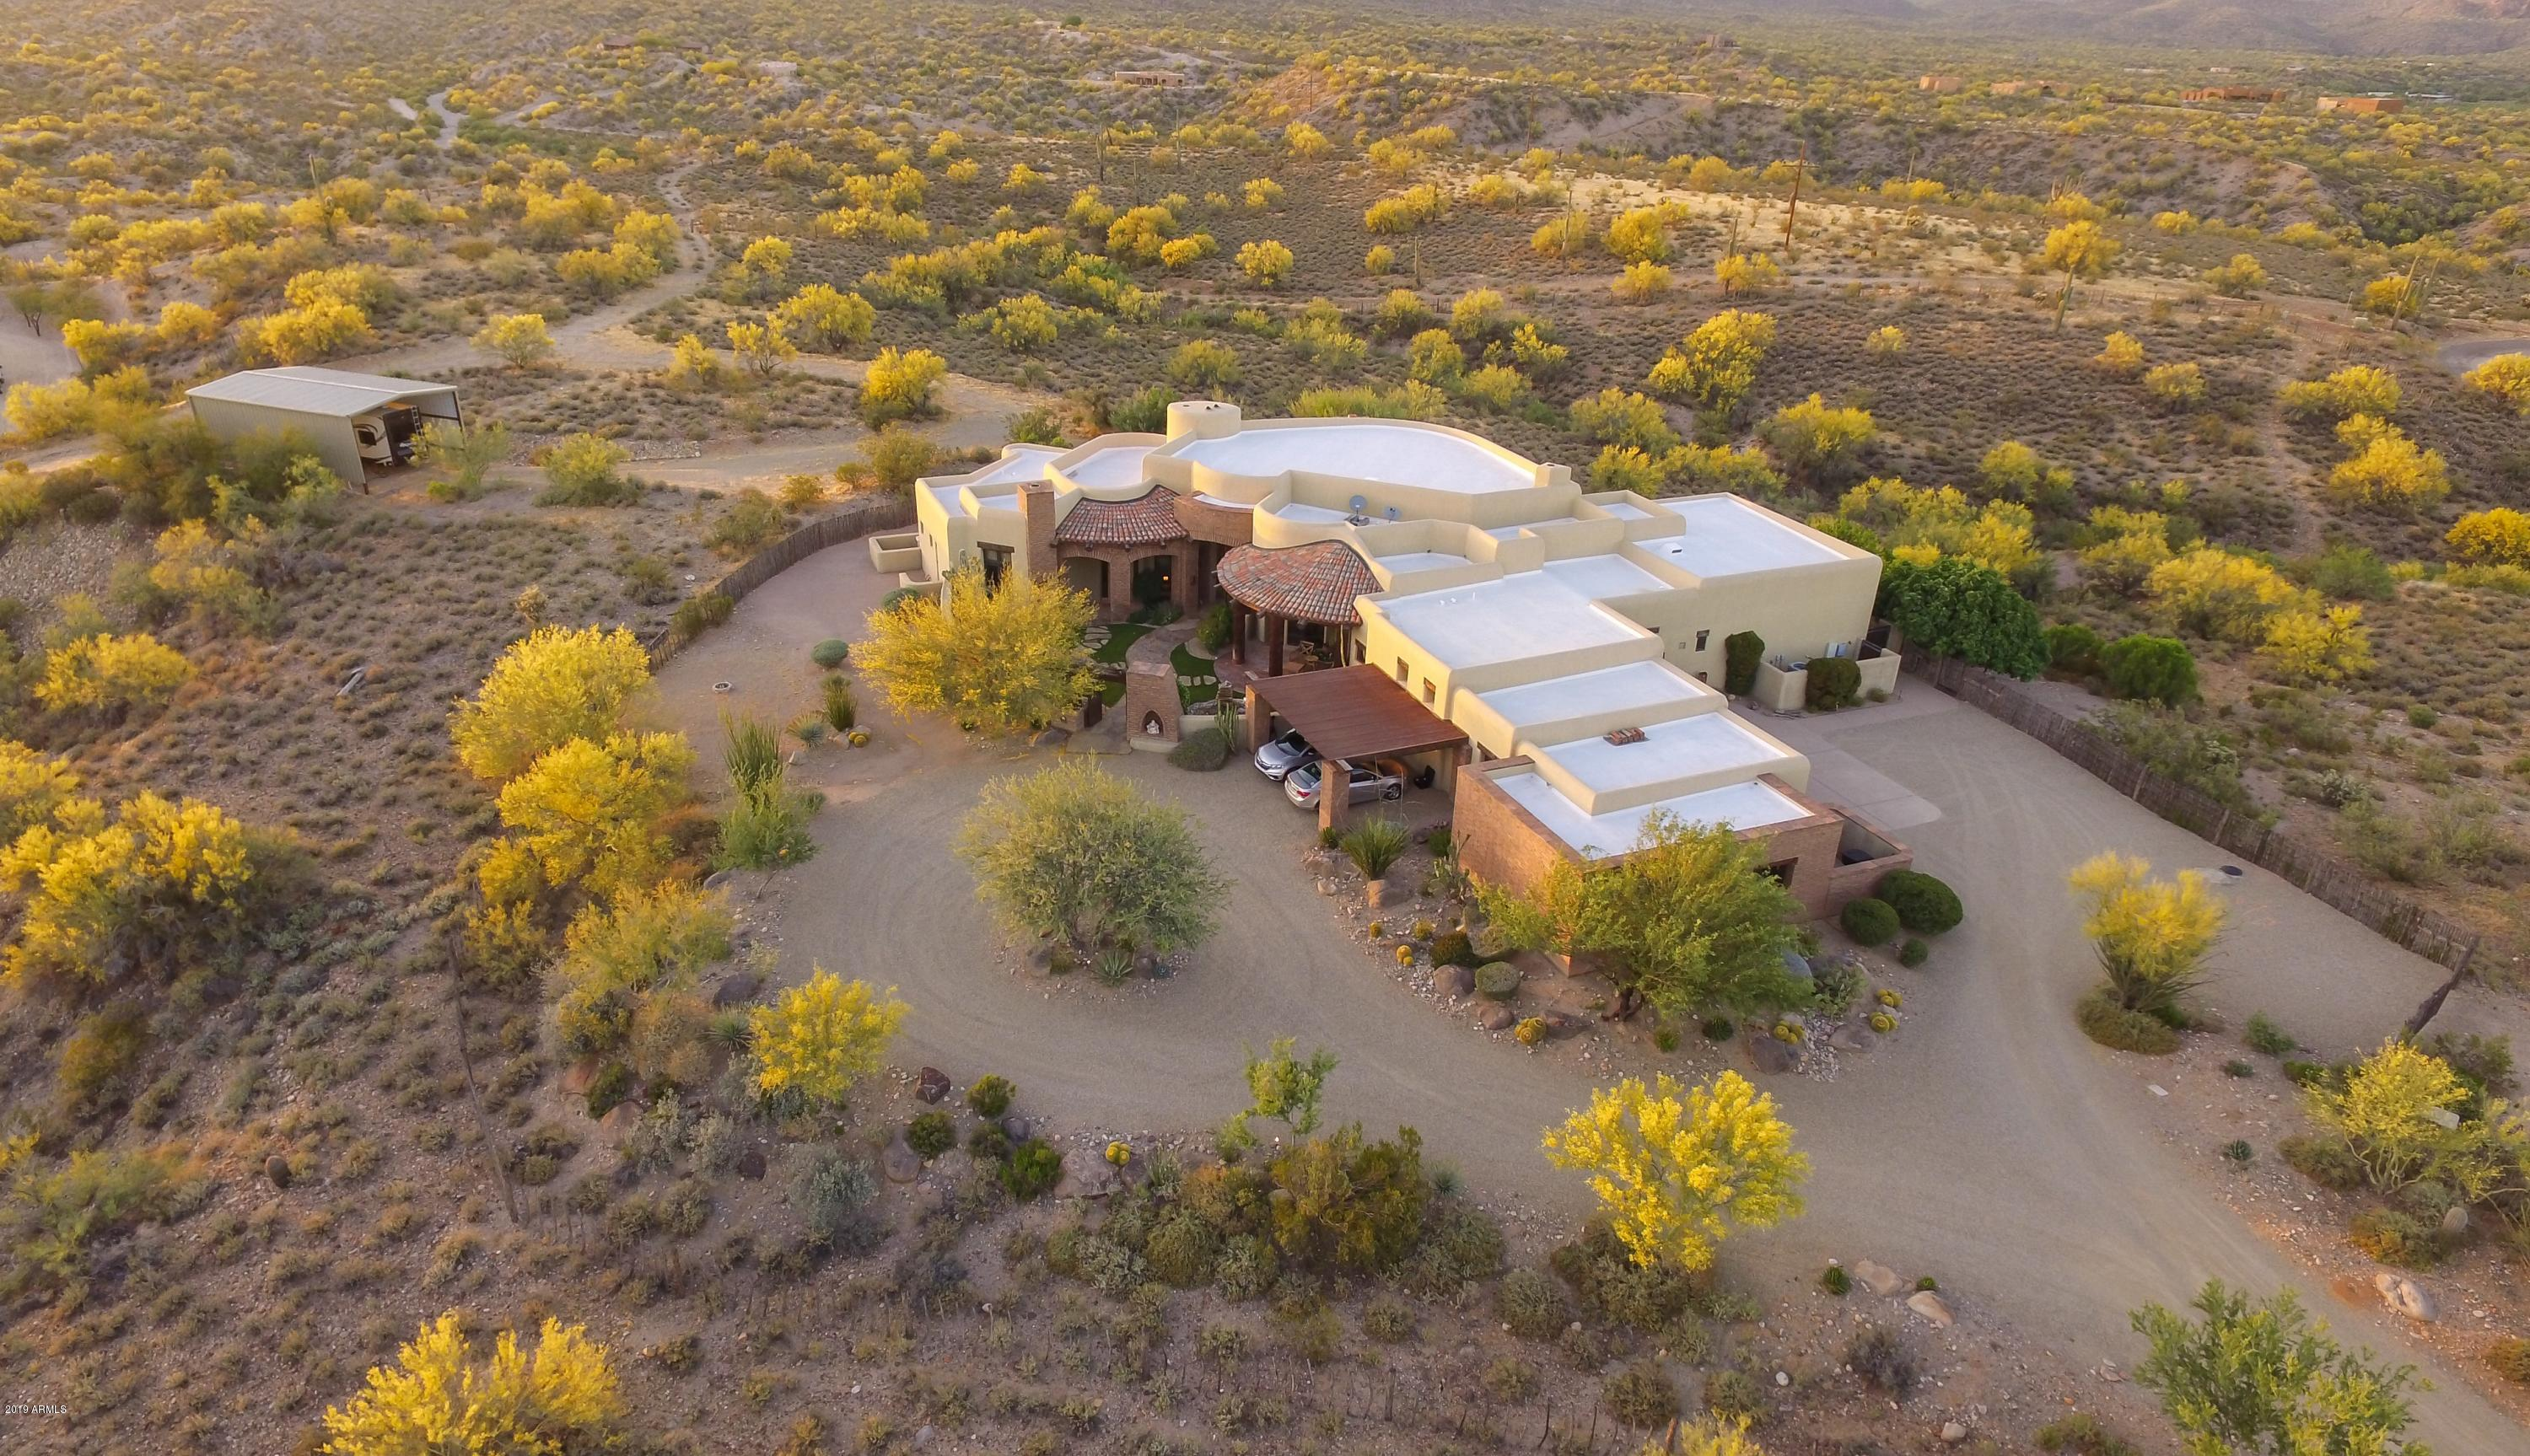 MLS 5935429 1230 W LARREA Trail, Wickenburg, AZ 85390 Wickenburg AZ One Plus Acre Home